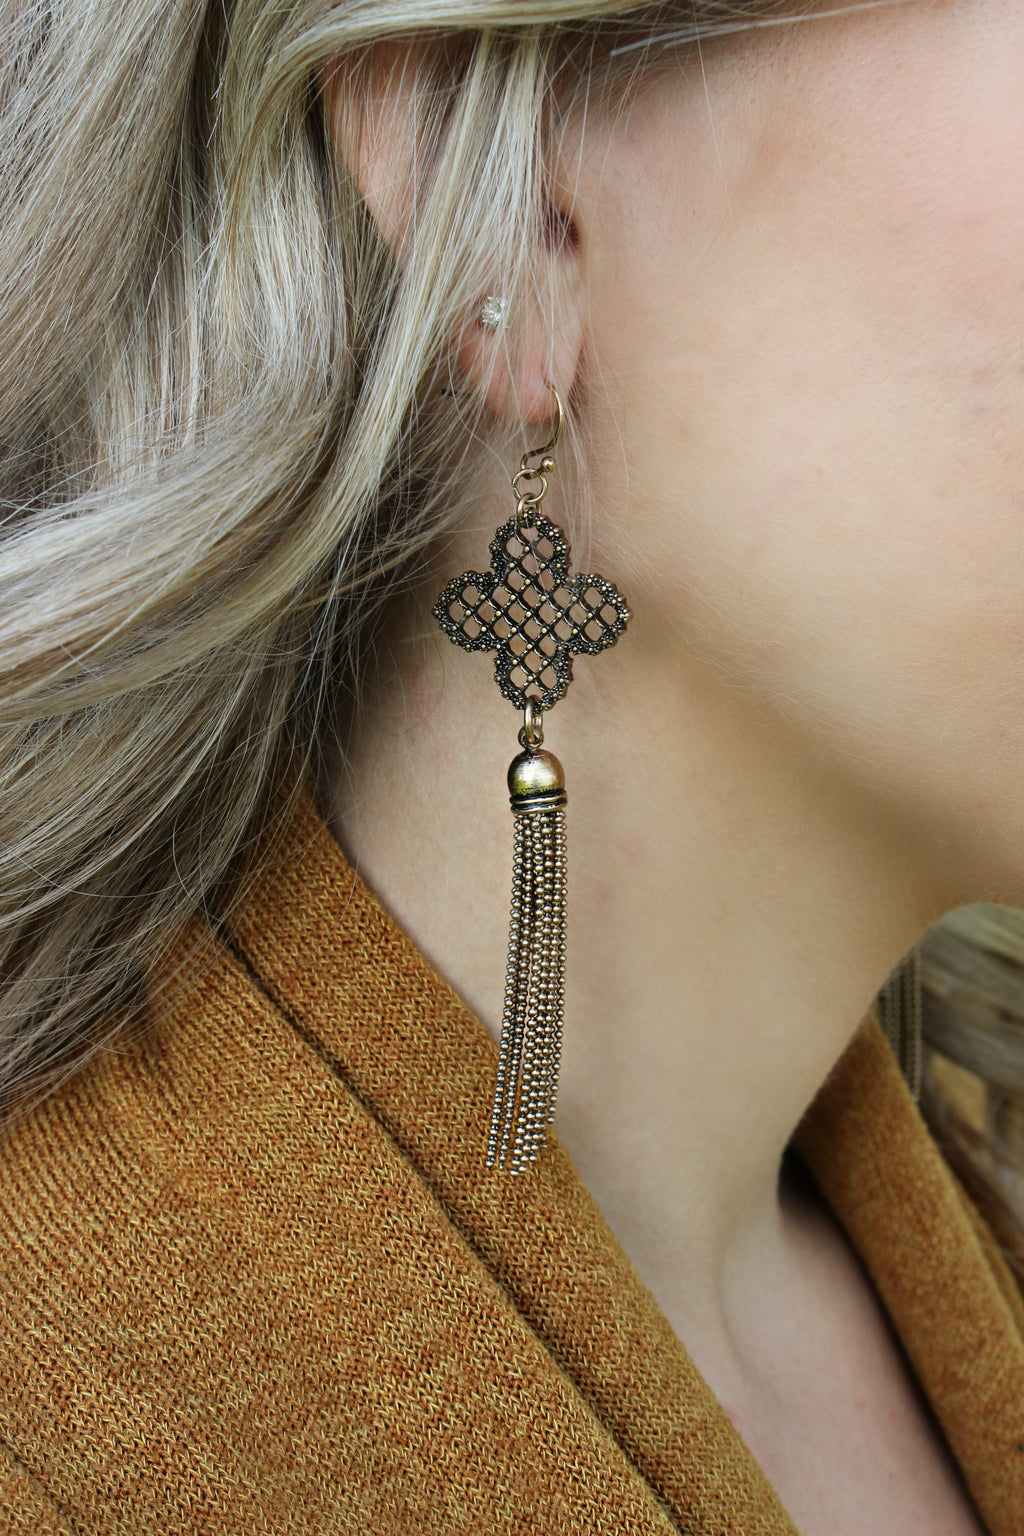 Rightfully So Earrings - Leah B. Boutique